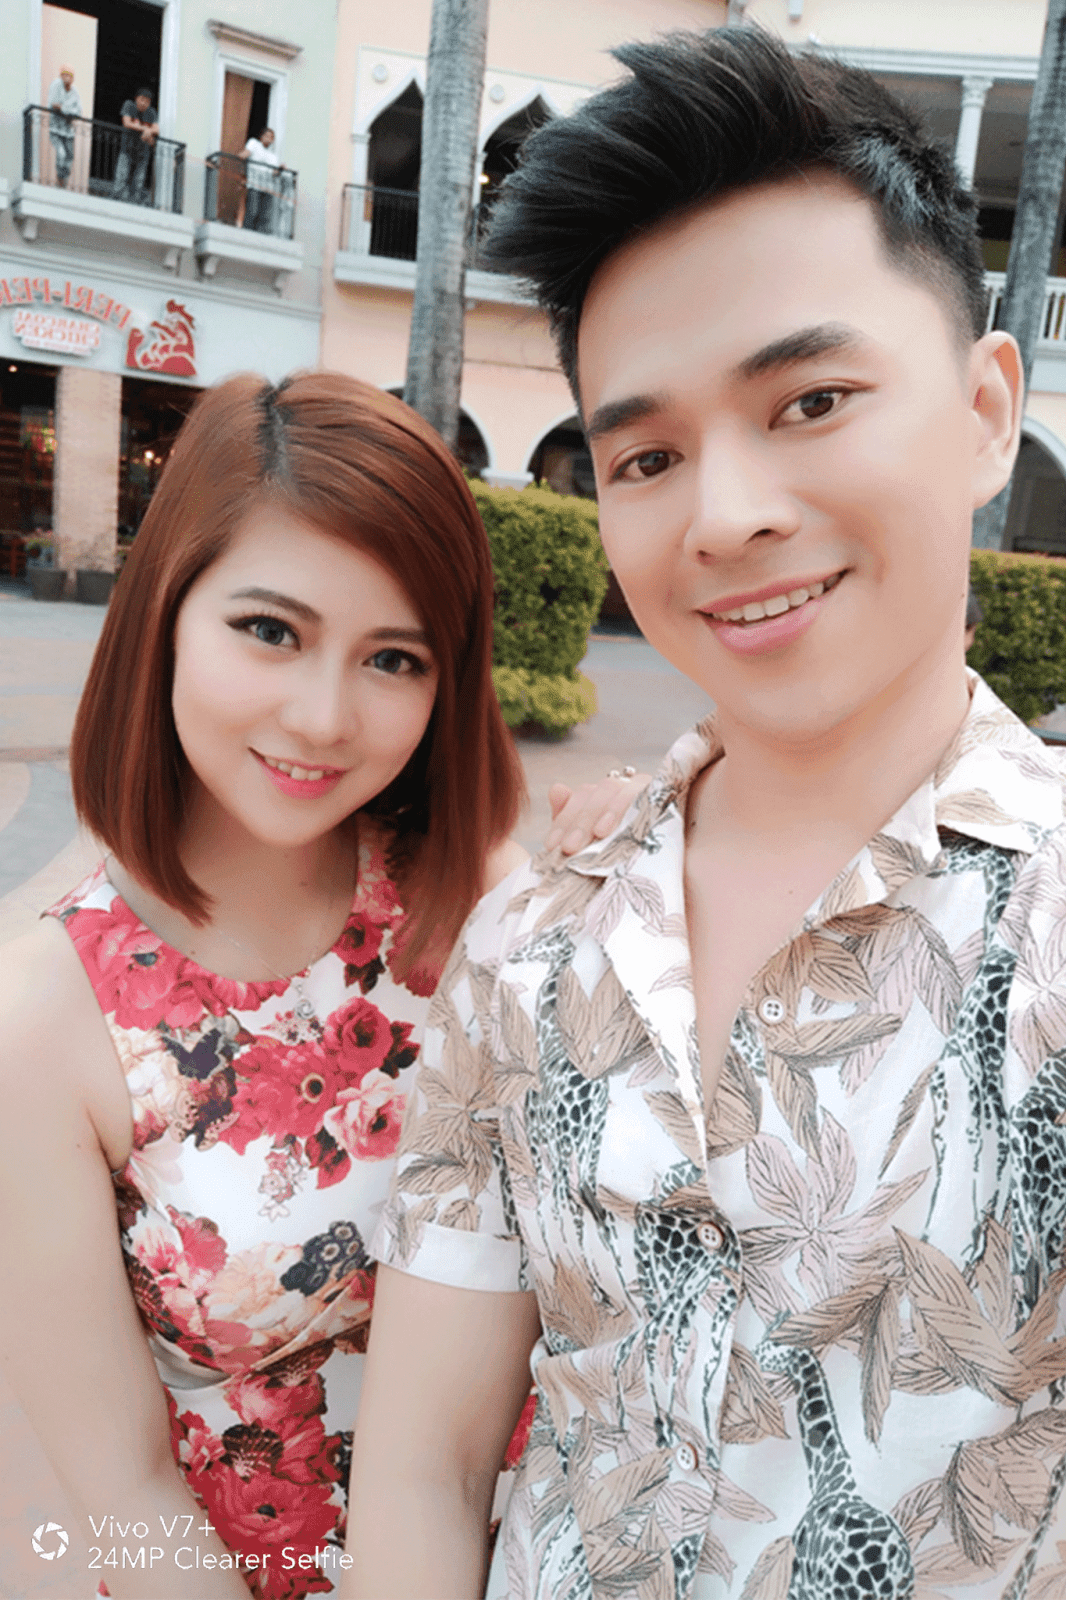 Take The Best Selfie With Your Valentine Vivo V7 Sandal Voltus Marissa Series 1